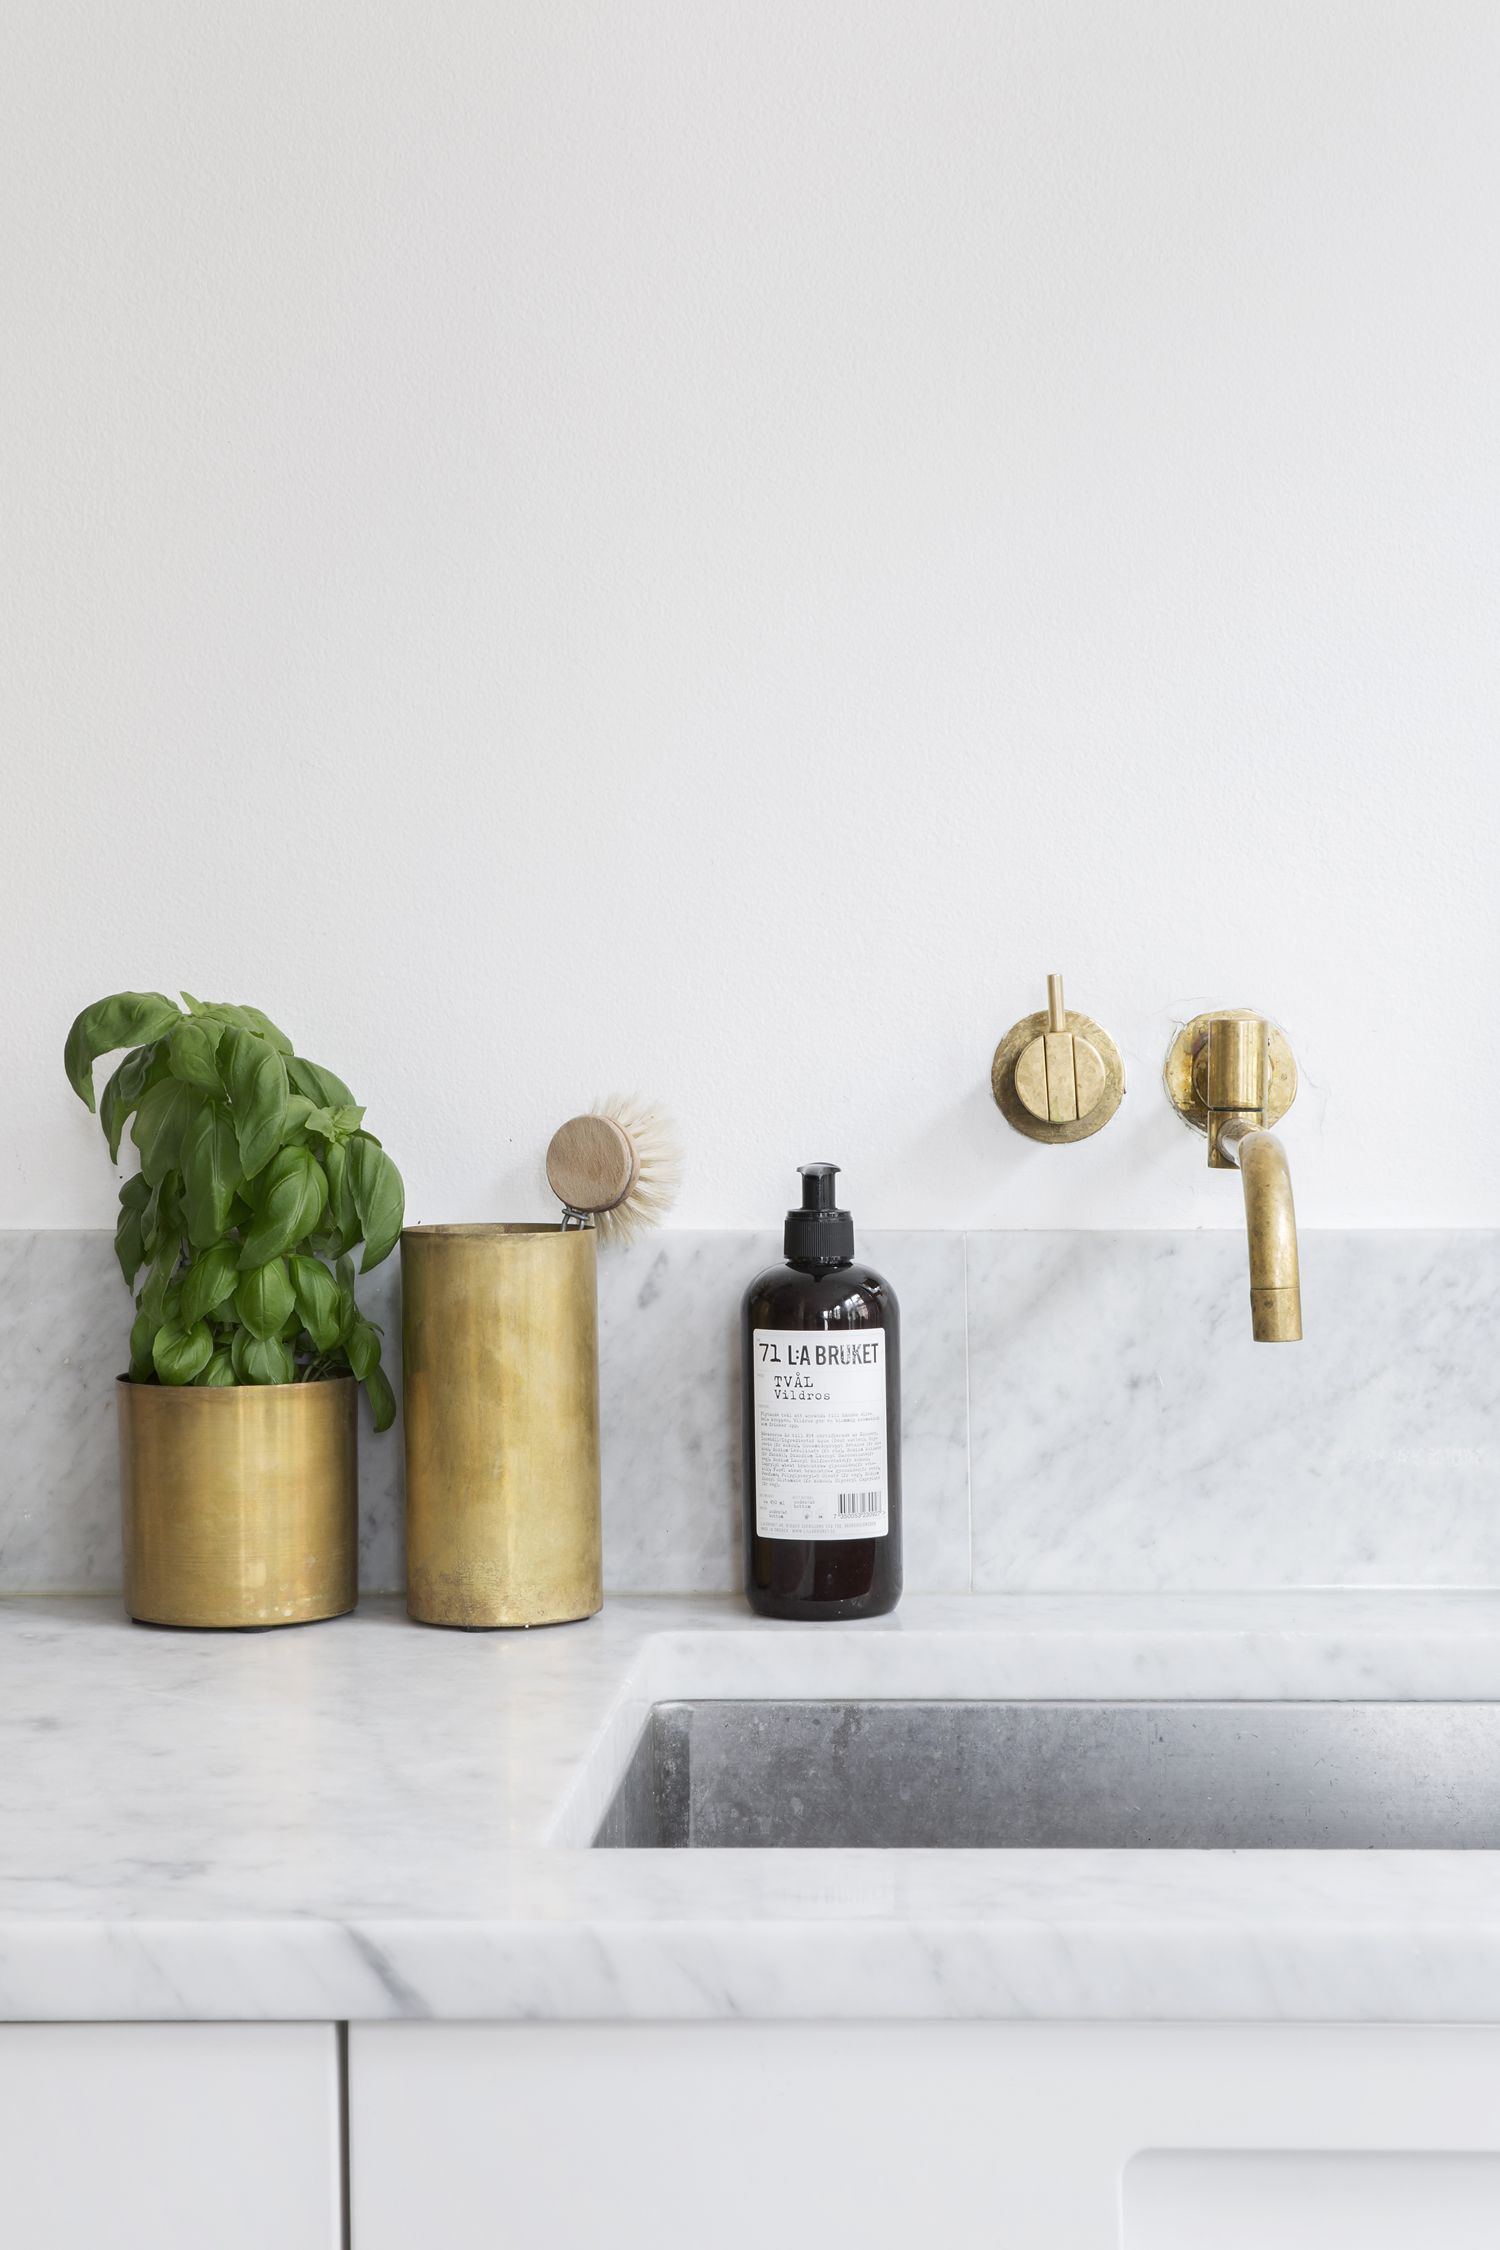 interiors kitchen marble brass fixtures brass containers interiors kitchen marble brass fixtures brass containers